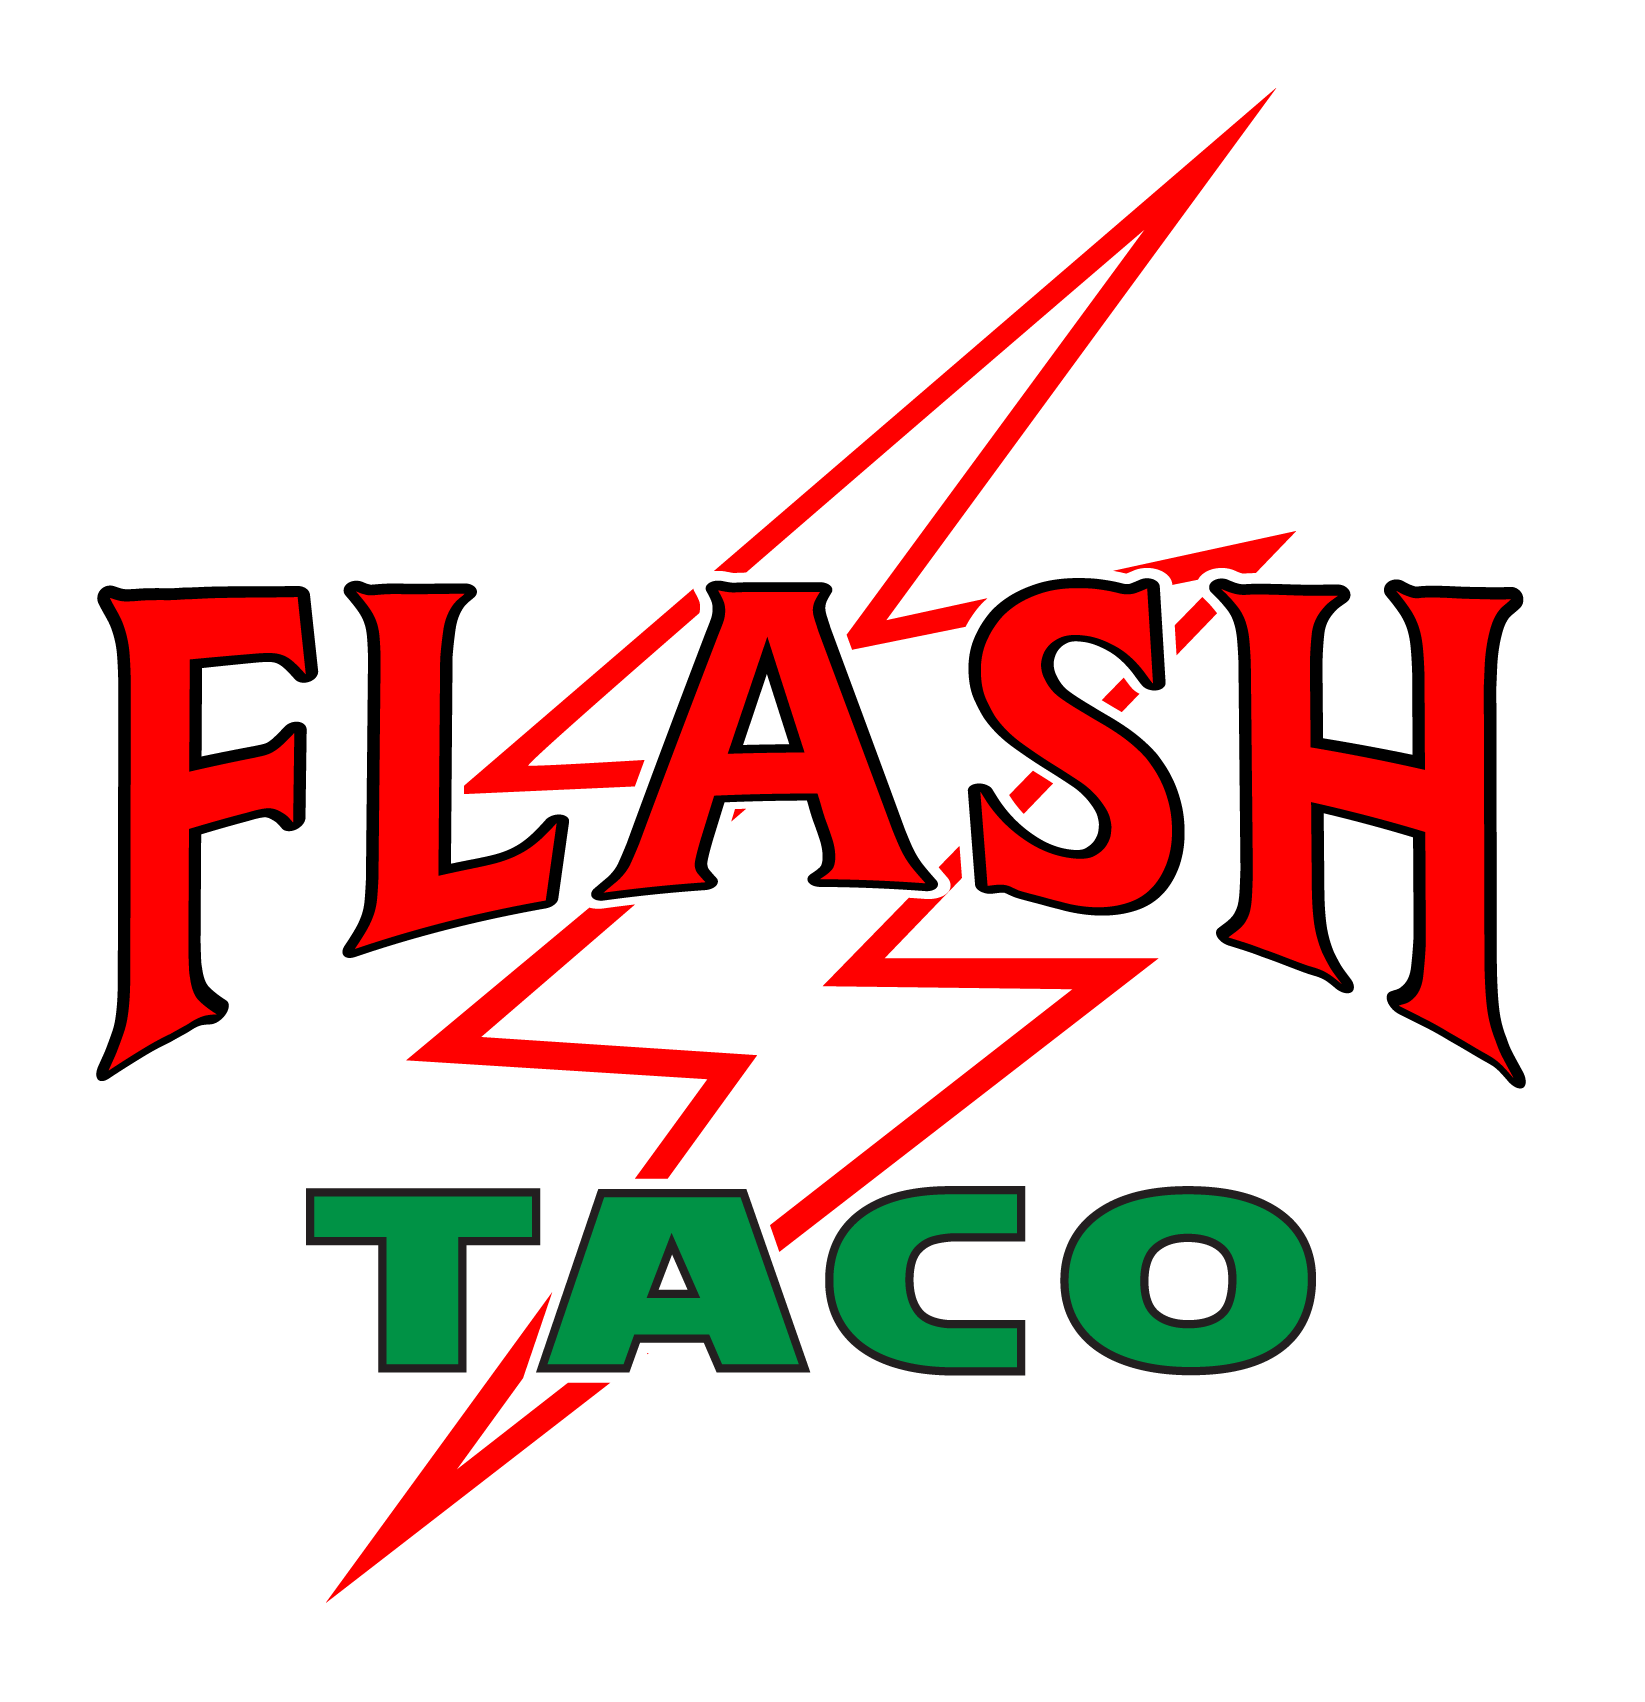 Flash Taco Restaurant and Food Truck